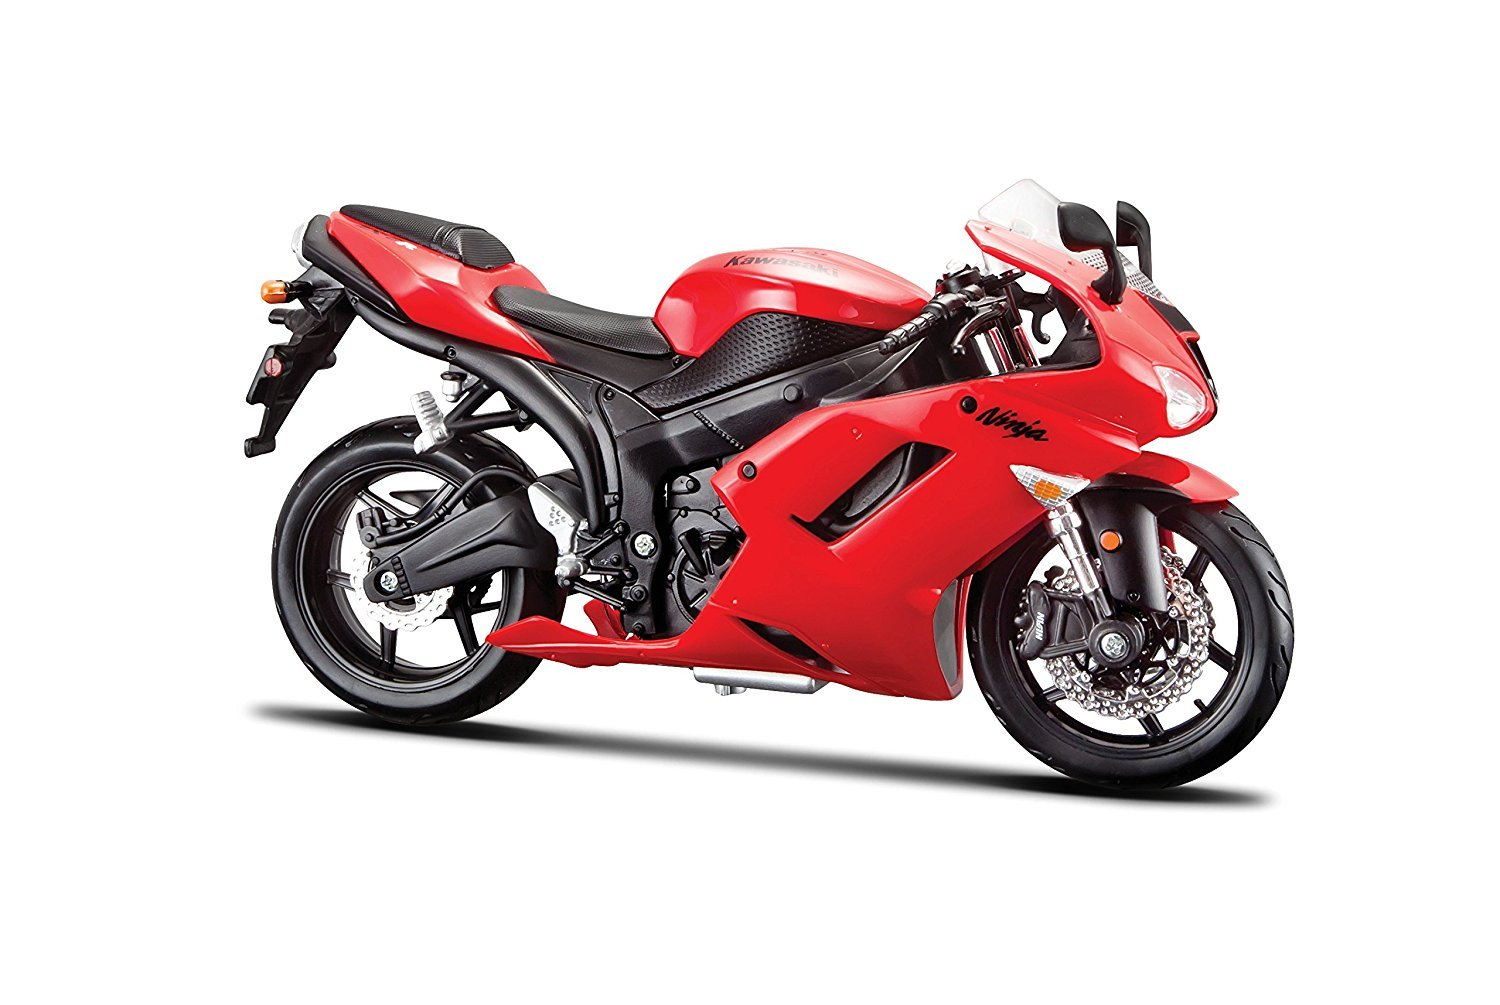 Maisto NEW 1:12 MOTORCYCLE COLLECTION - RED KAWASAKI NINJA ZX-6R By